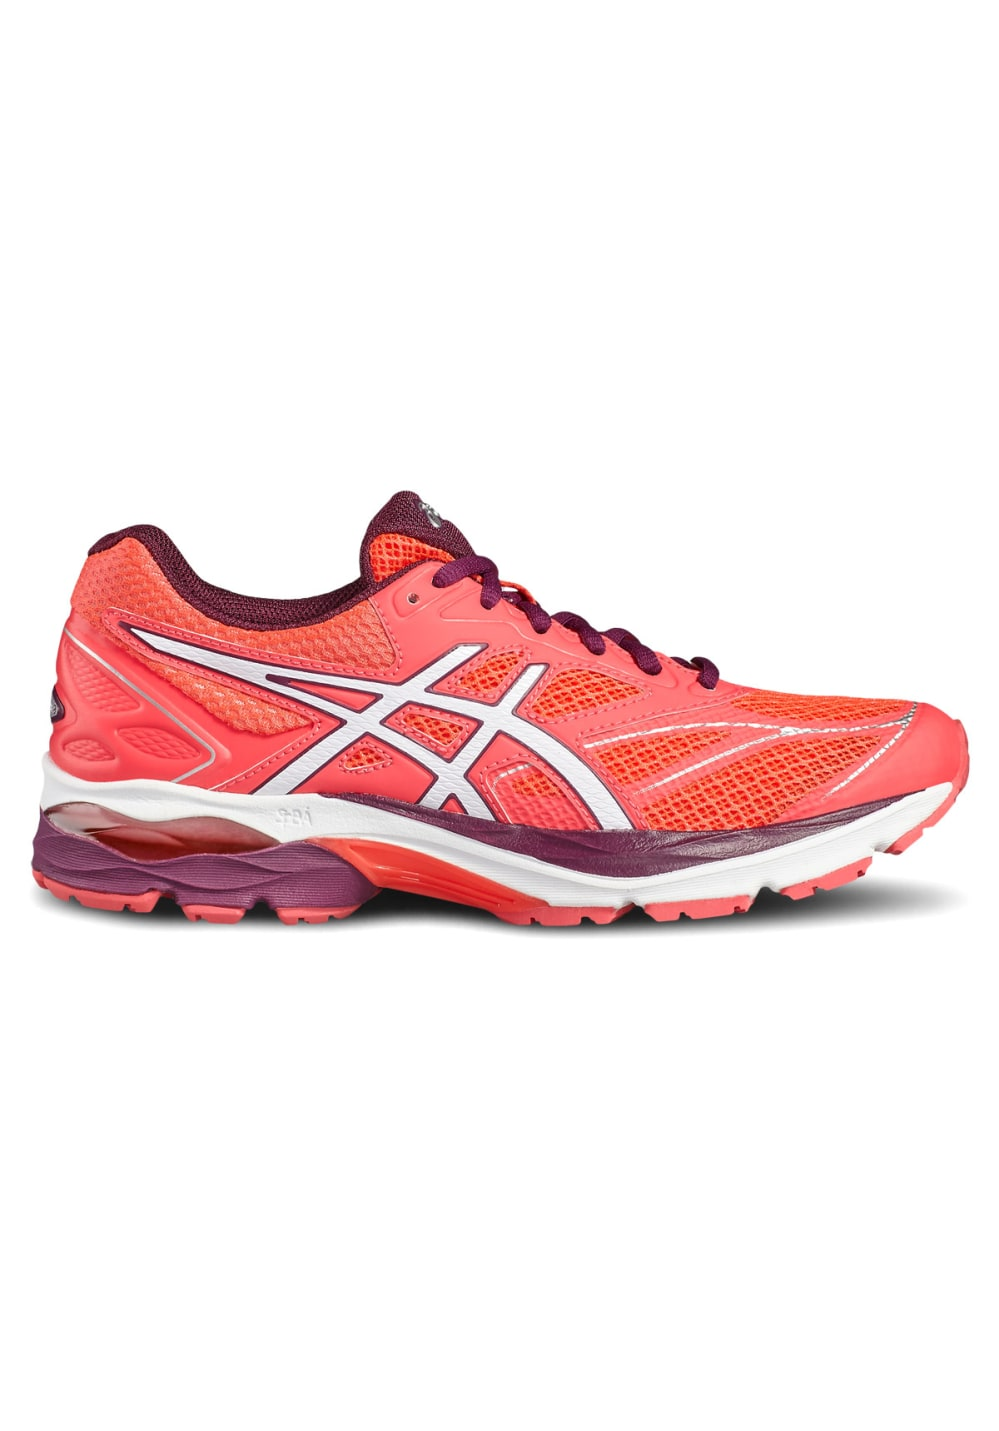 ASICS GEL Pulse 8 Chaussures running pour Femme Rouge